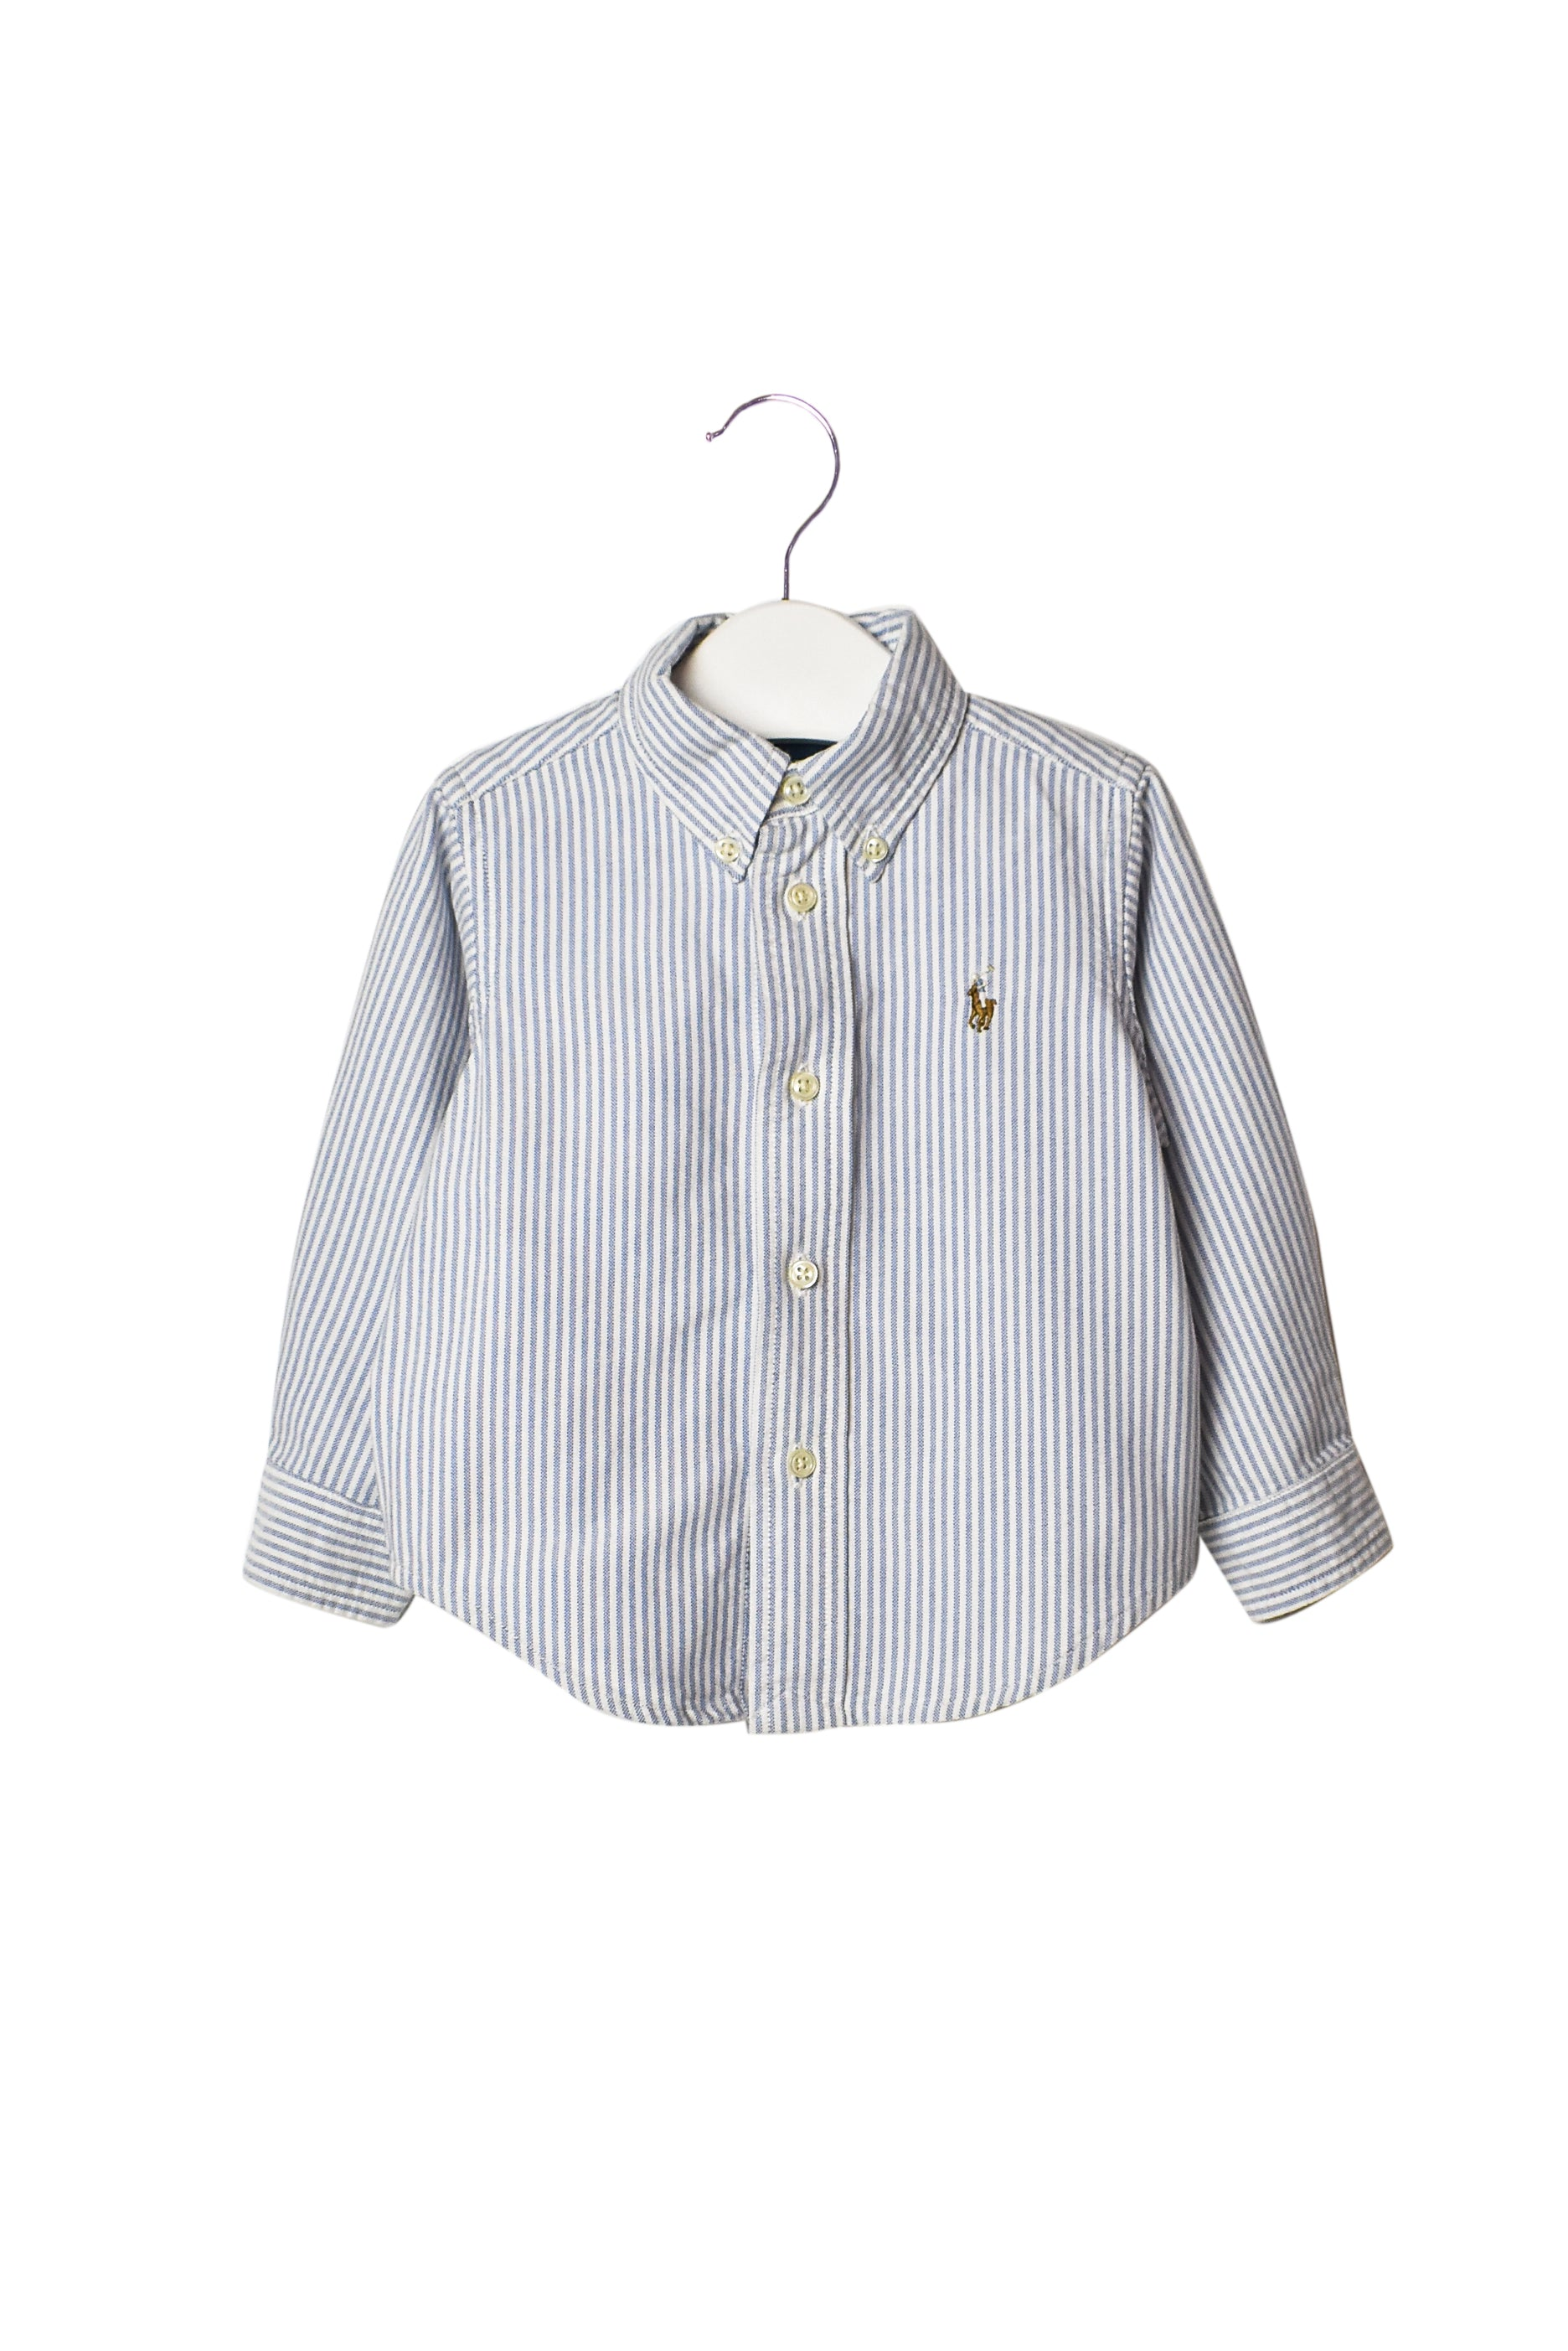 10007817 Ralph Lauren Baby~ Shirt 12M at Retykle